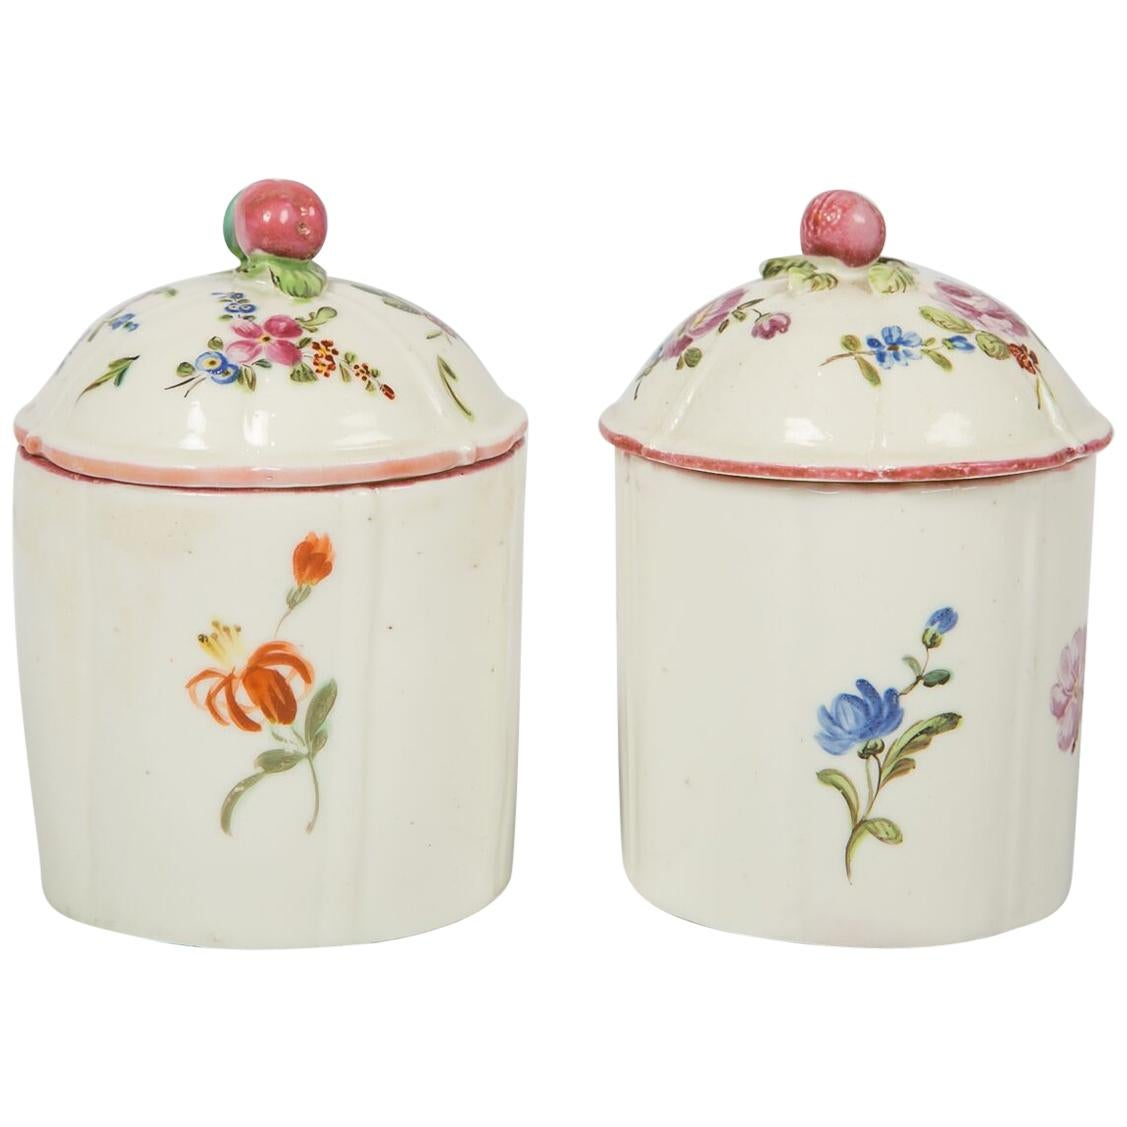 Pair of 18th Century French Porcelain Pots by Mennecy Made circa 1750